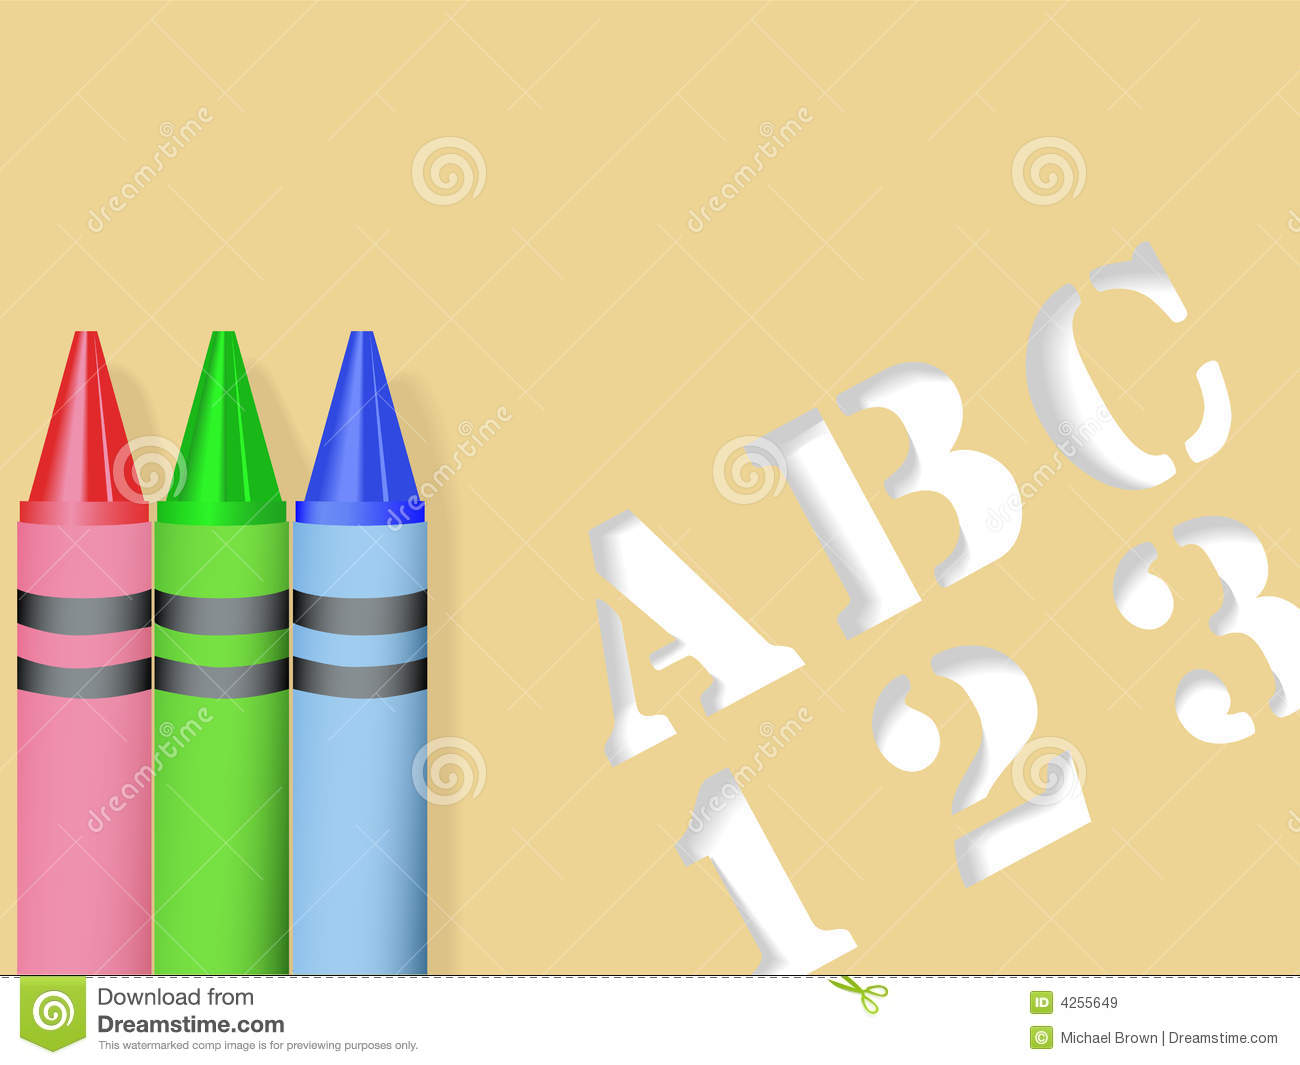 ABC 123 Stencil & Red Green Blue Crayons Royalty Free Stock Images ...